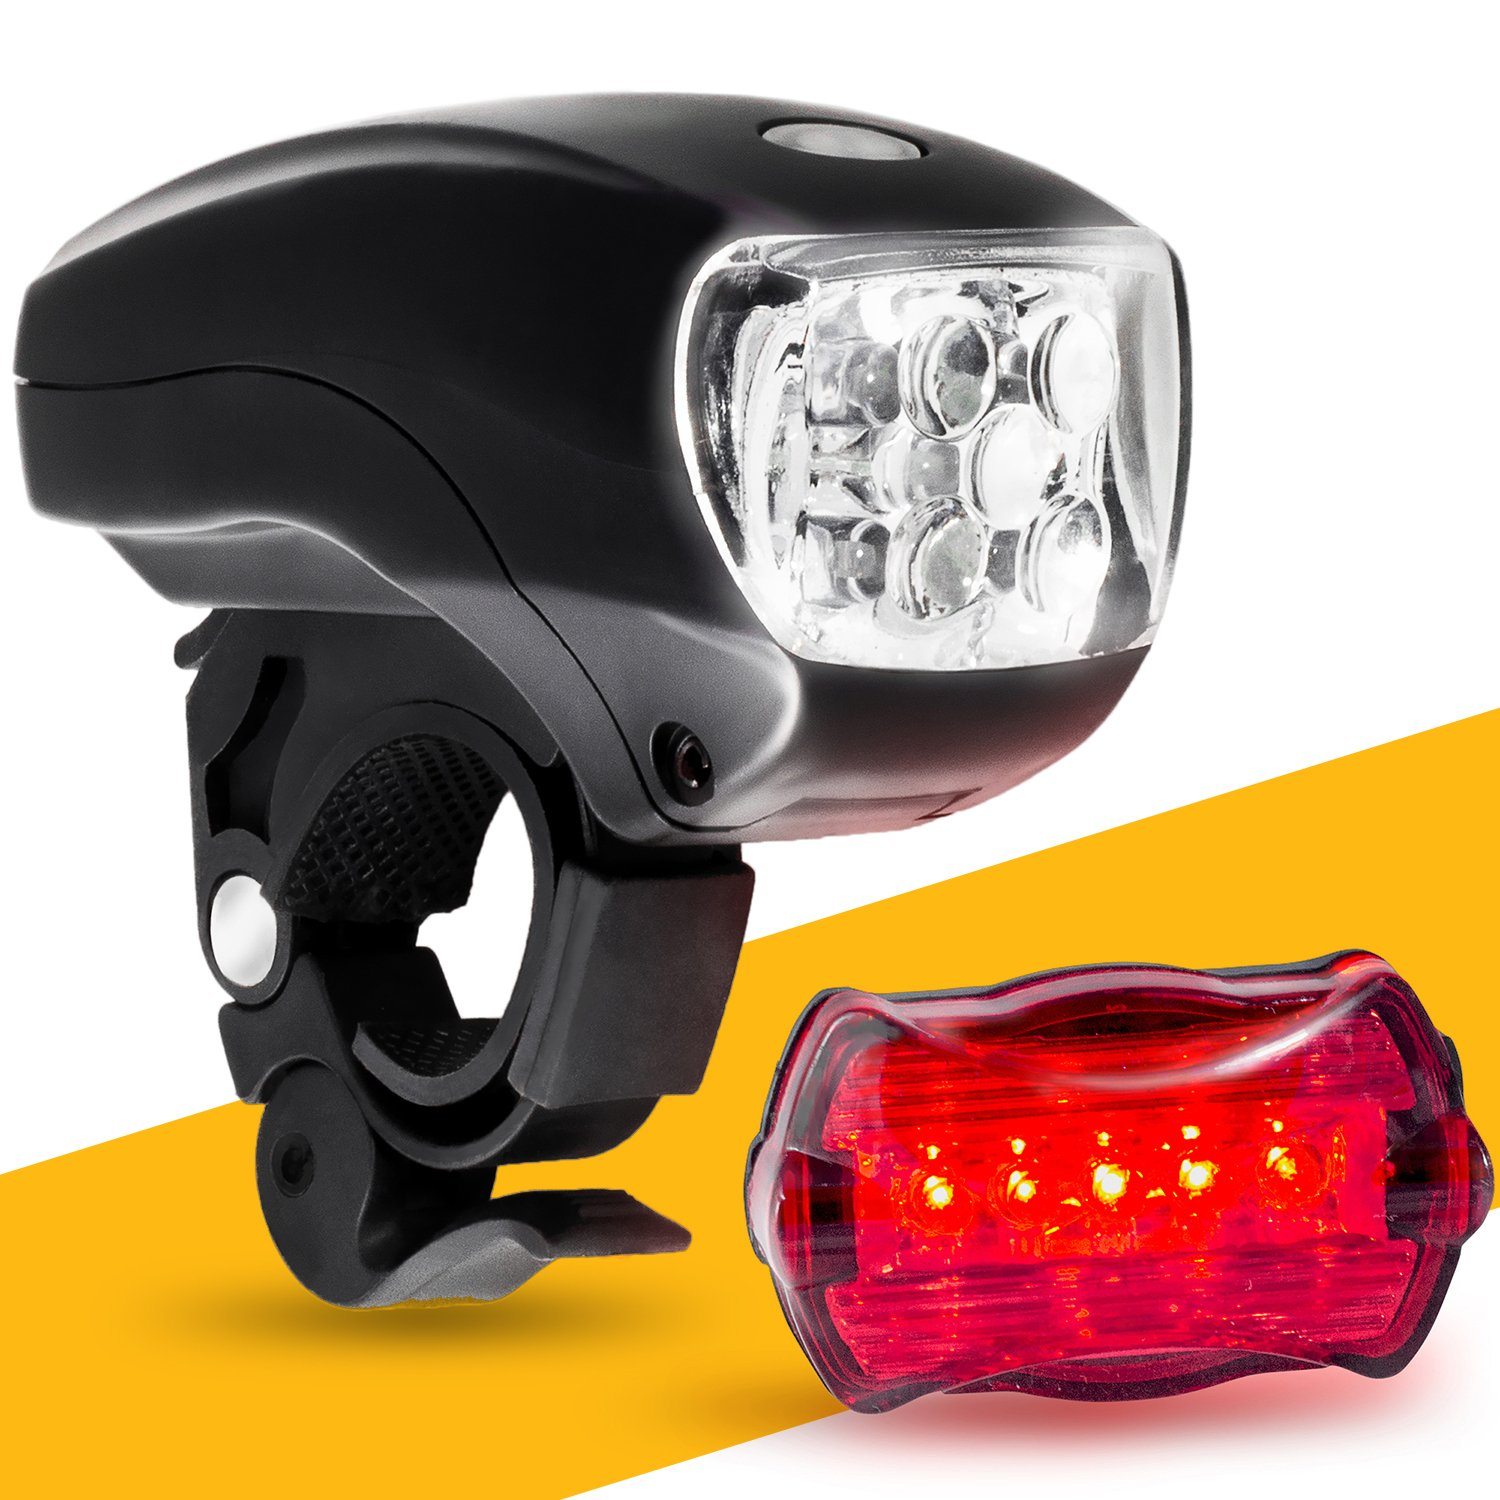 LED BIKE LIGHT SET. Bicycle headlight & taillight combo. Ultrabright 5 LED kit.. Use on bike or scooter. FREE high visibility reflectors. ~ In BG Lights gift box as pictured by BoG Products (Image #1)